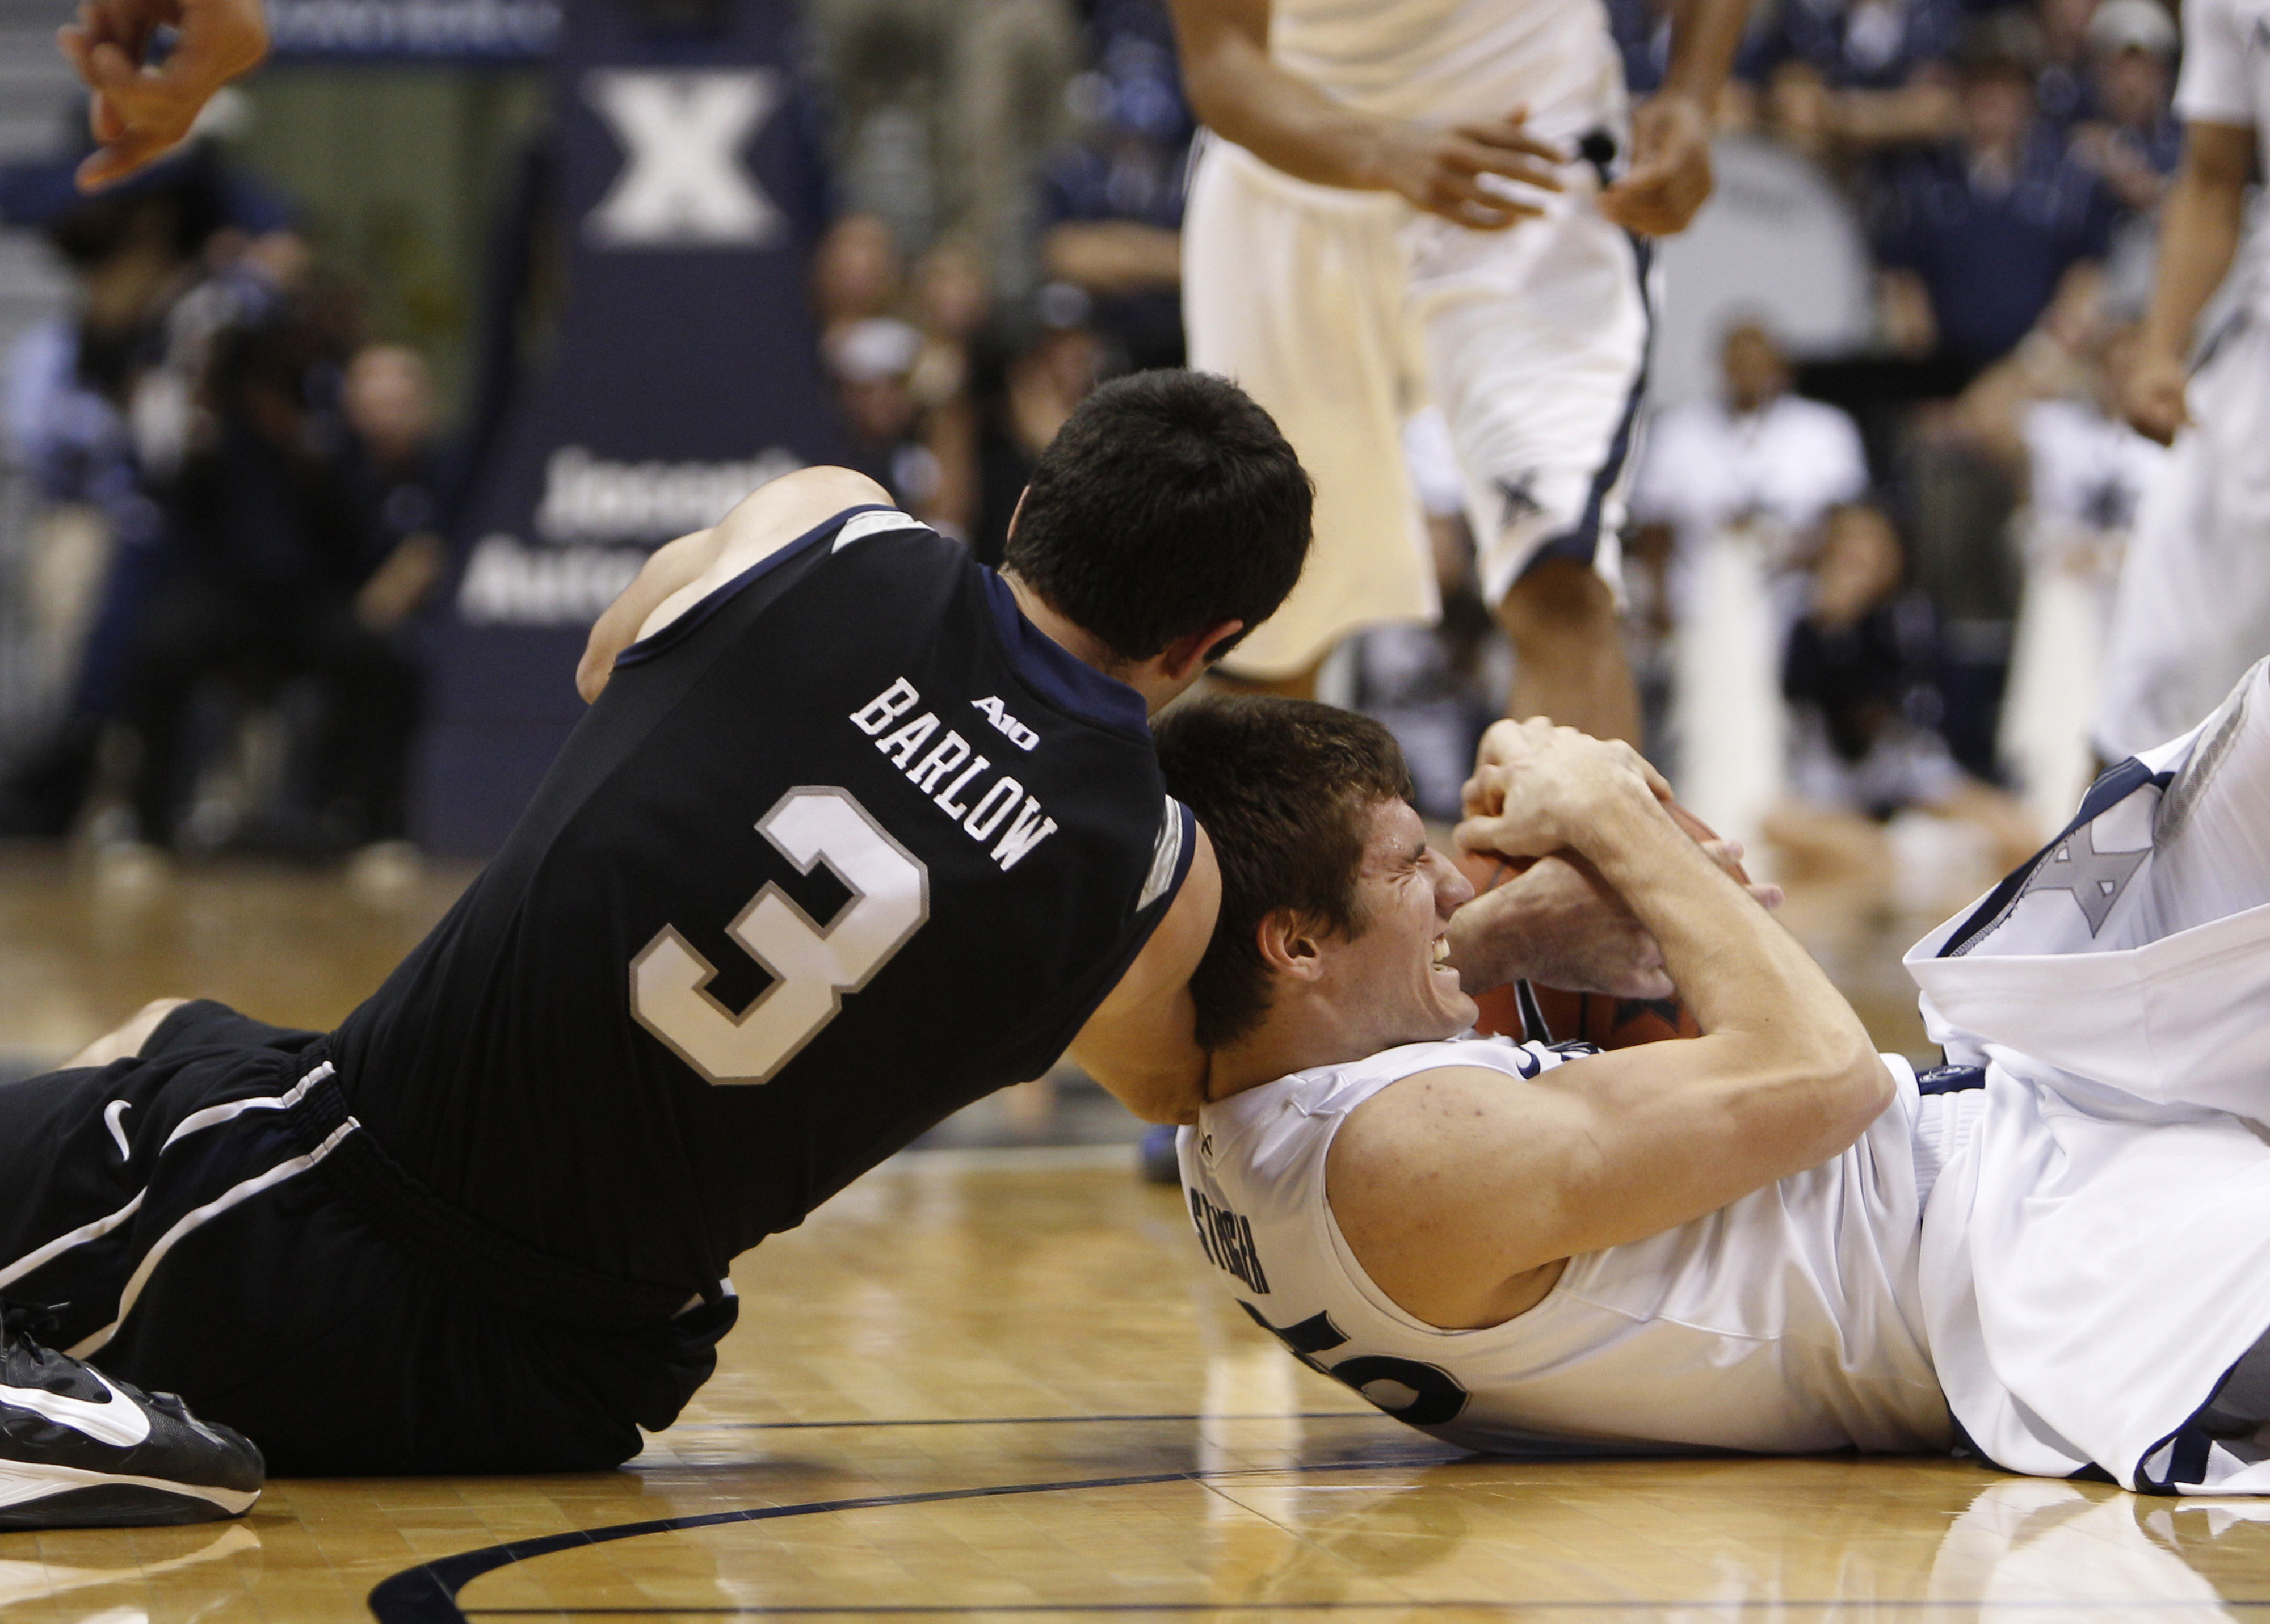 When Erik Stenger gets playing time, bodies are sure to hit the floor.